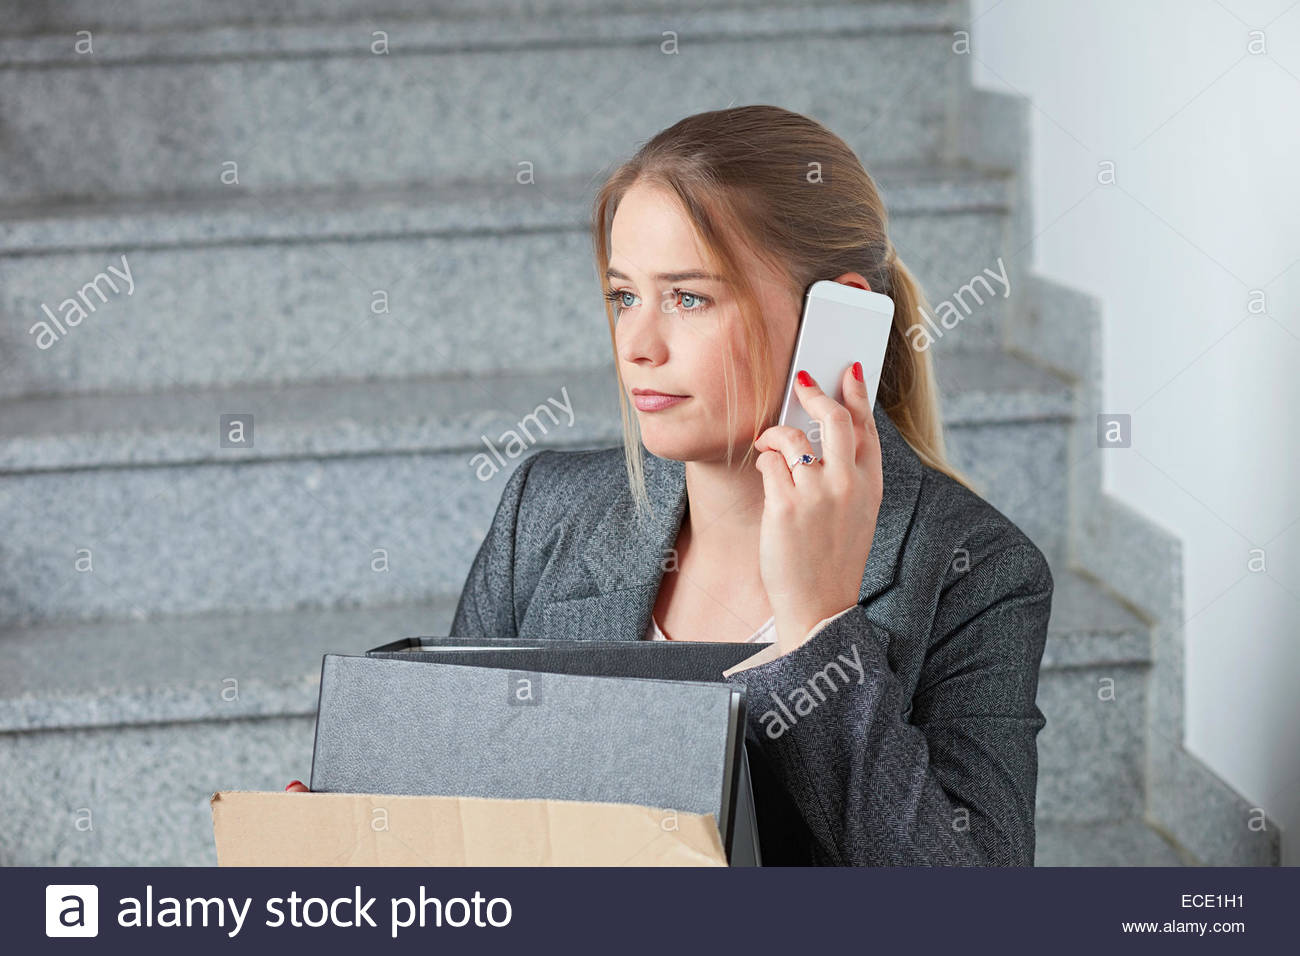 Businesswoman mobile phone fired jobless - Stock Image